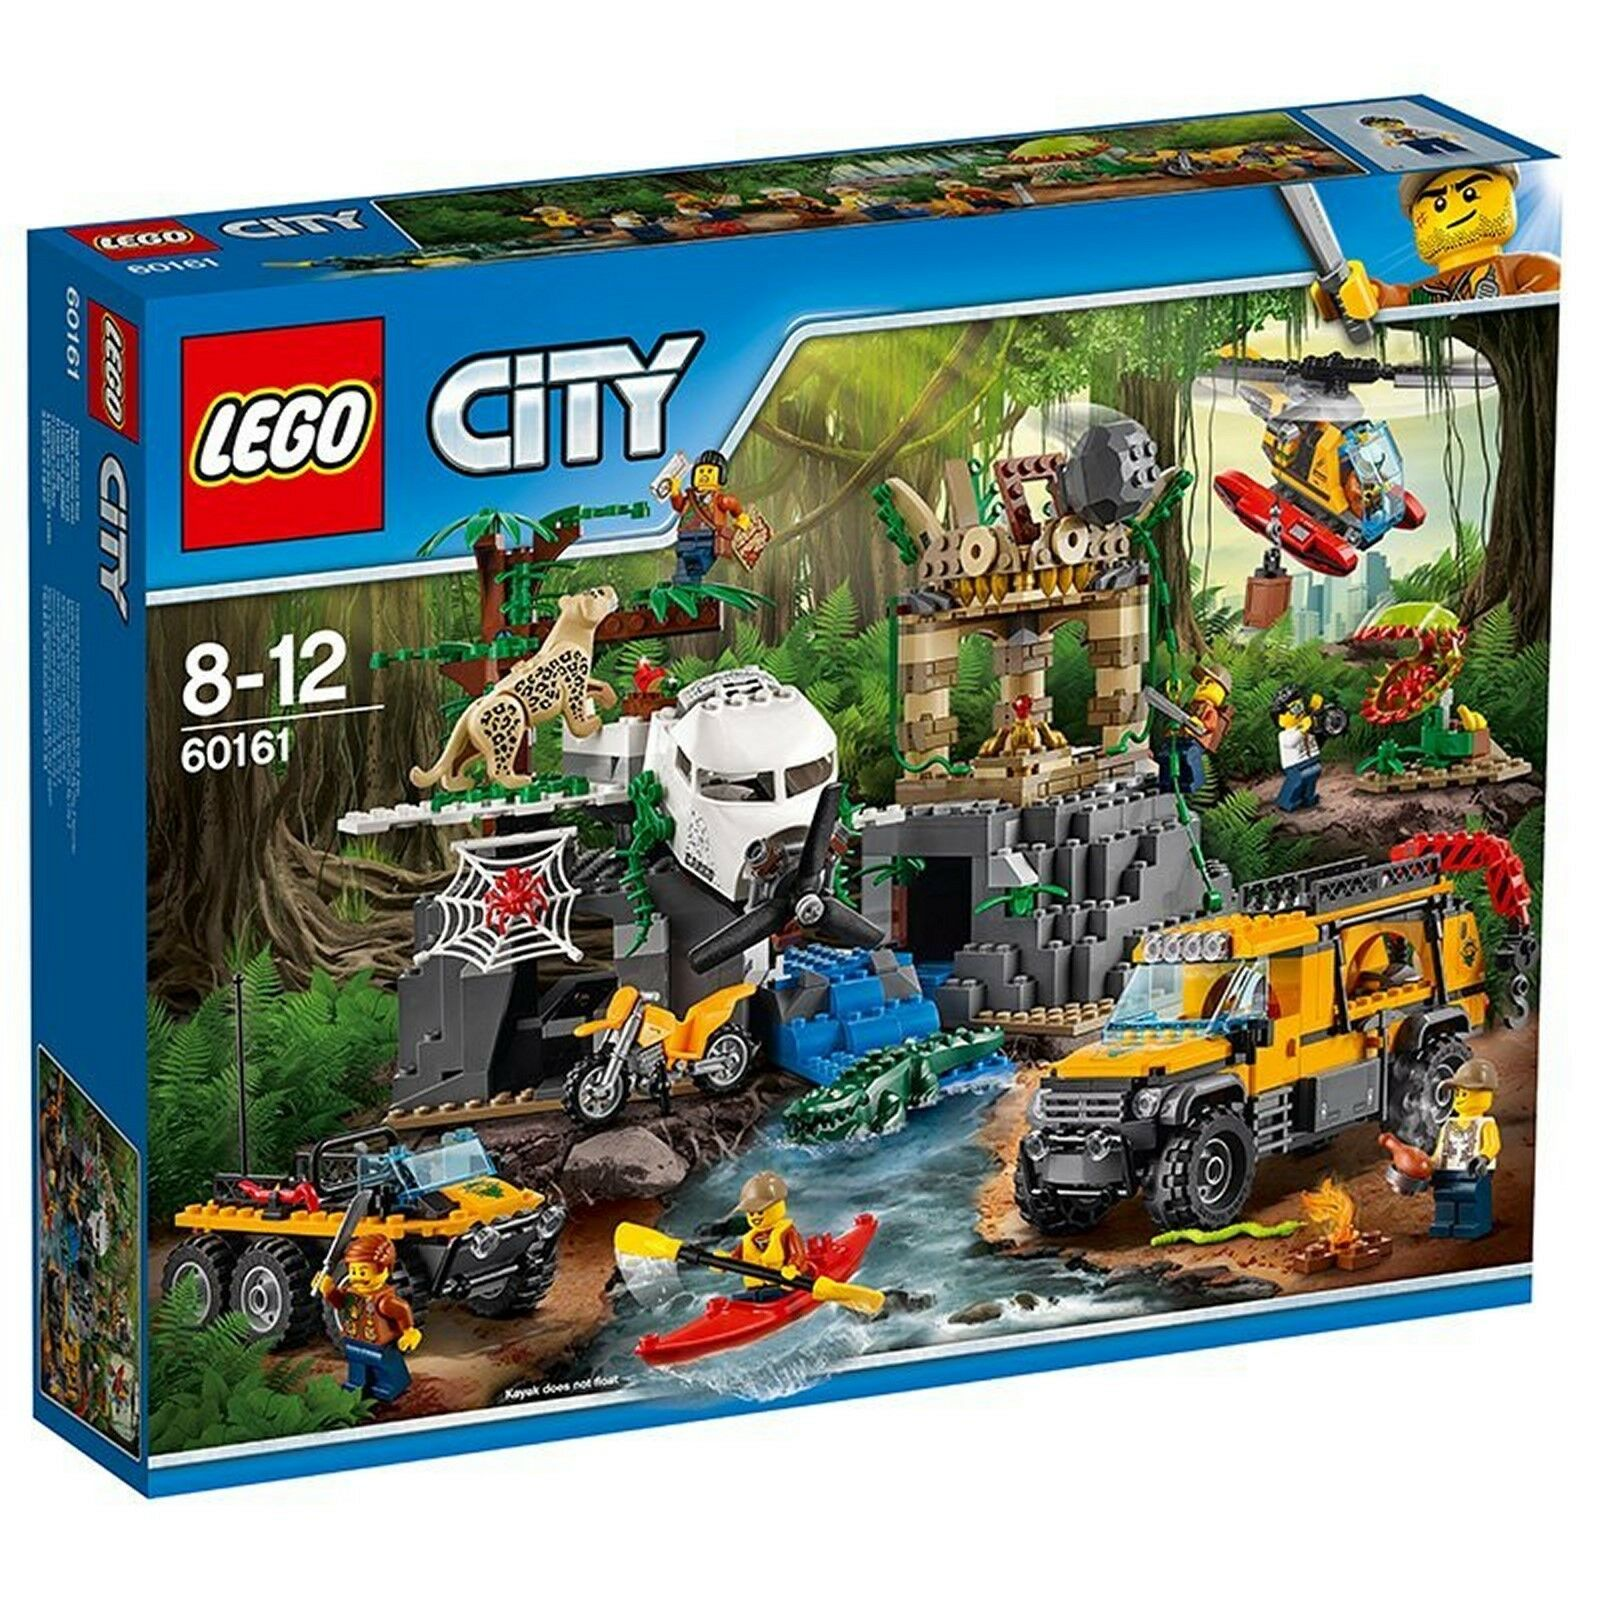 LEGO® City 60161 - Dschungel-Forschungsstation - 813 TEILE, Jungle Exploration